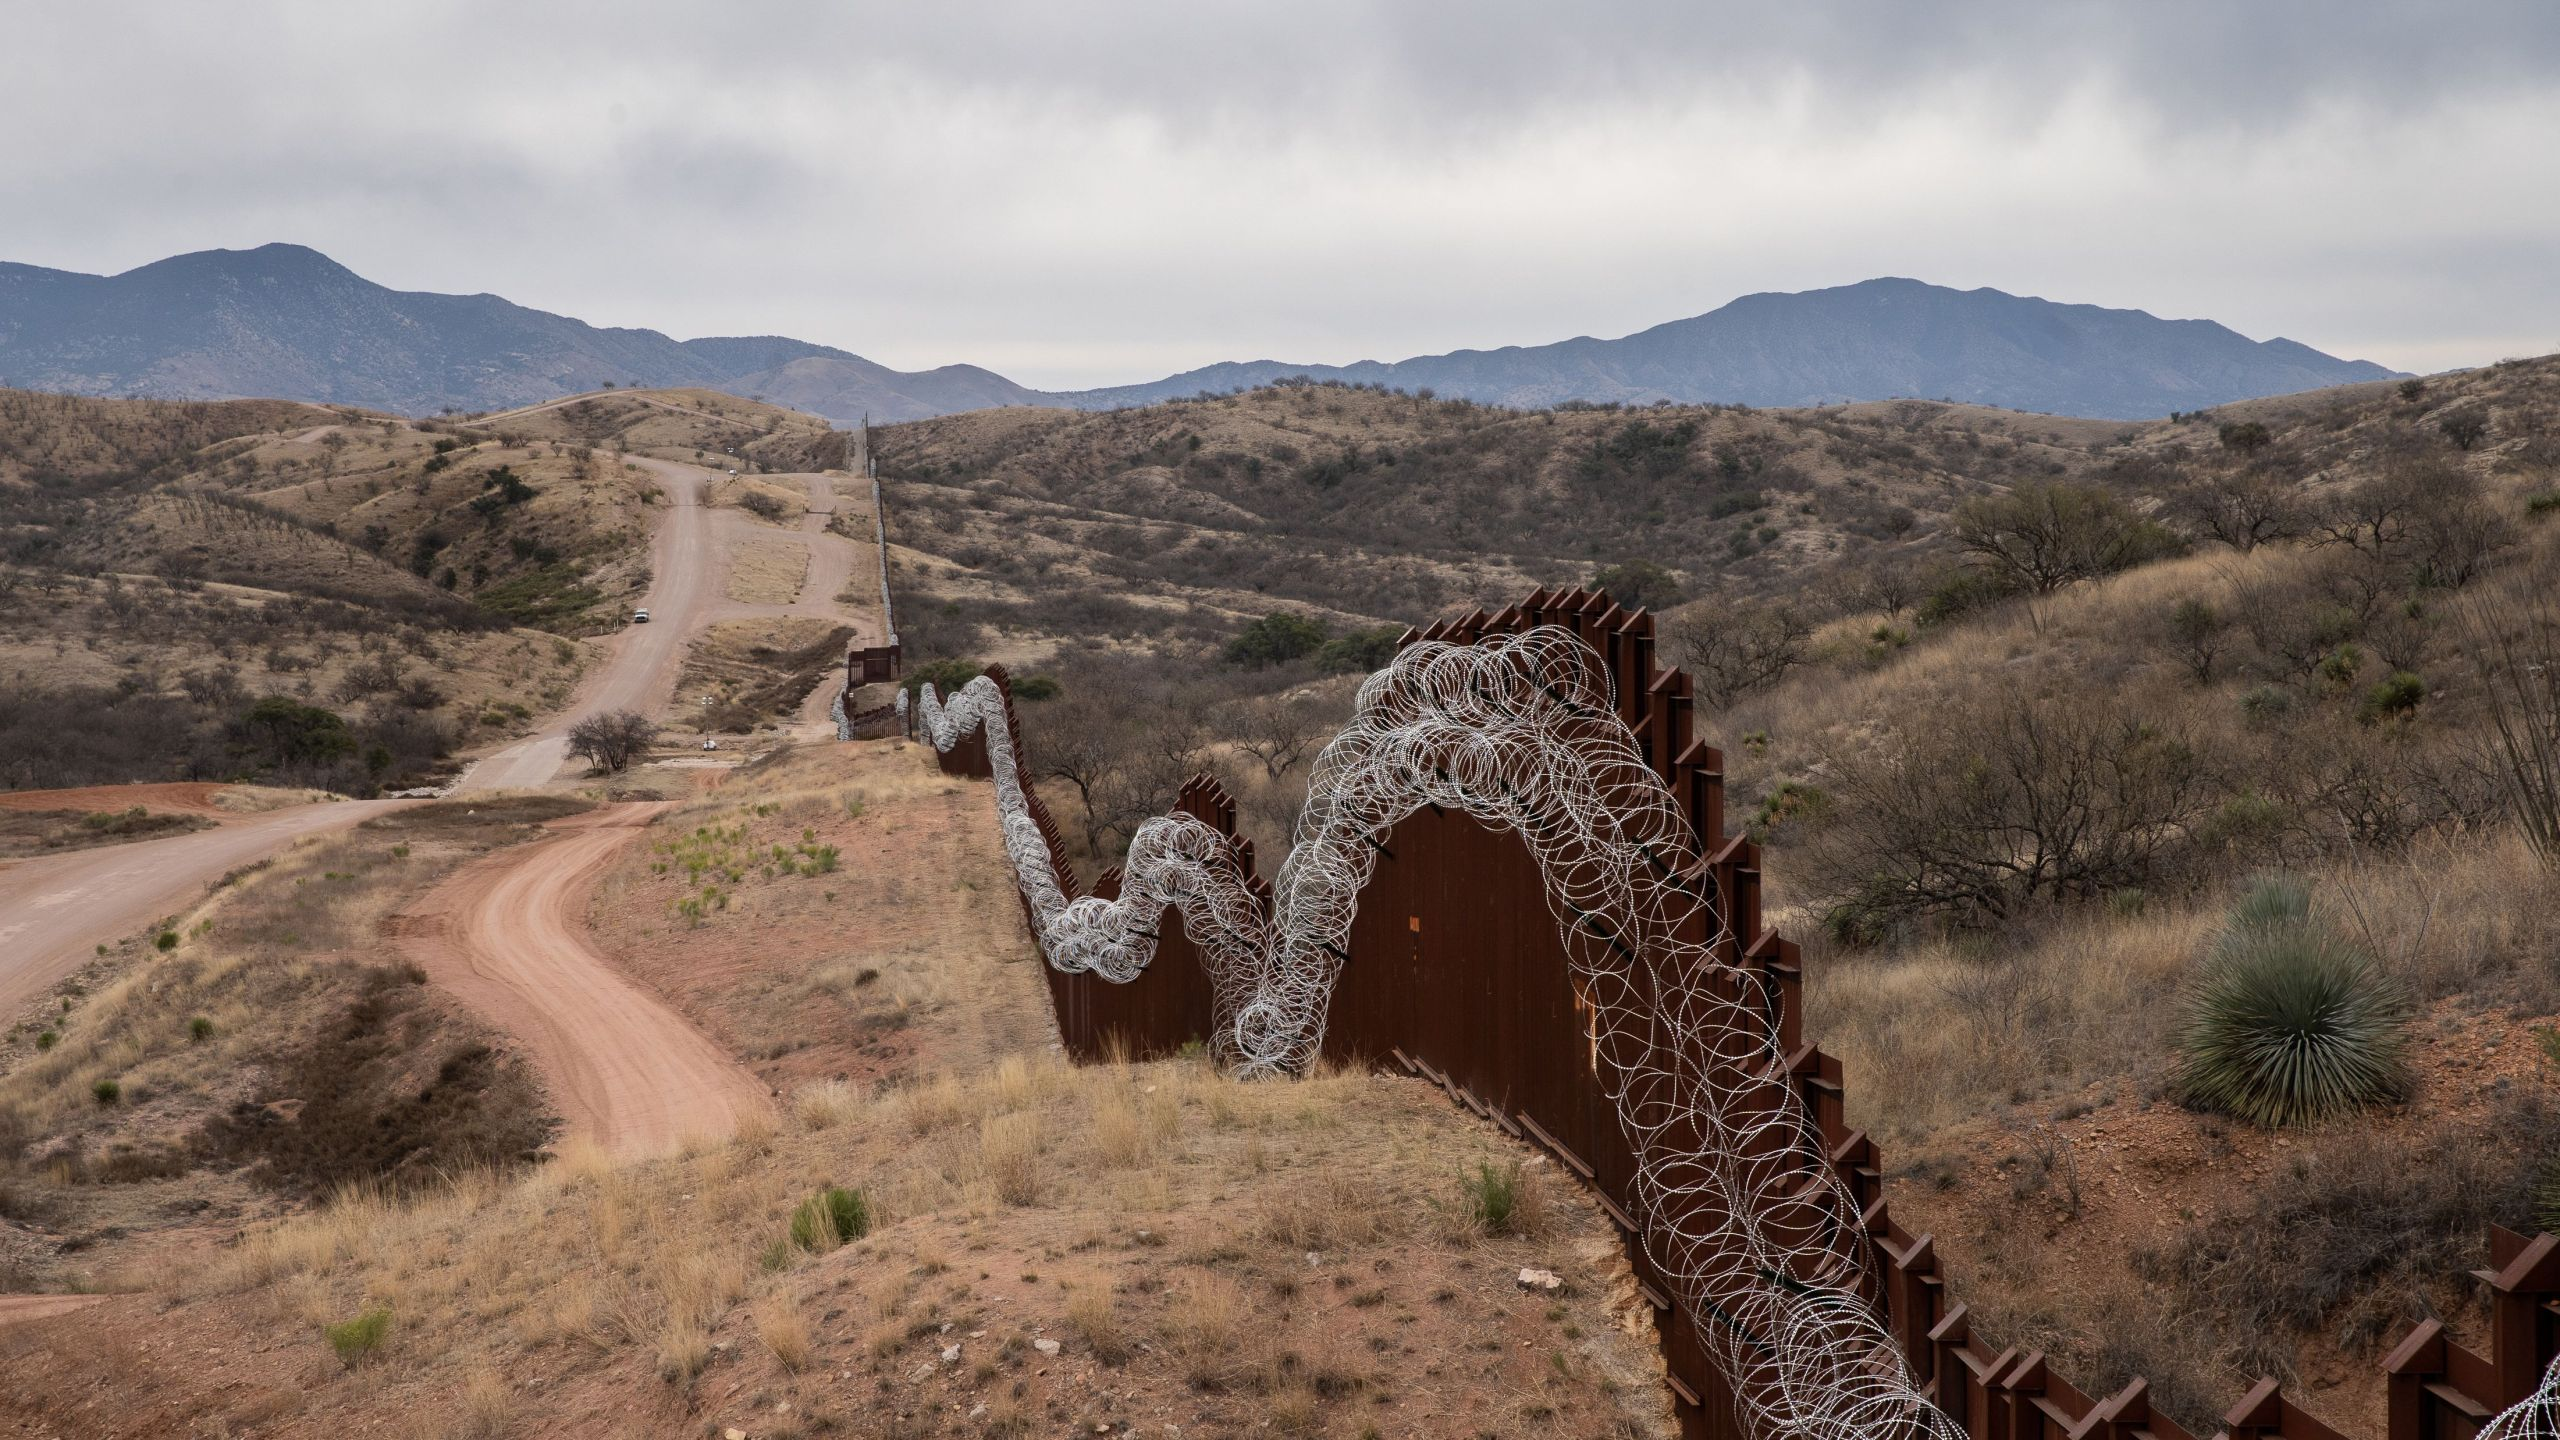 A general view of the US border fence, covered in concertina wire, separating the US and Mexico, at the outskirts of Nogales, Arizona, on February 9, 2019. (Credit: ARIANA DREHSLER/AFP/Getty Images)